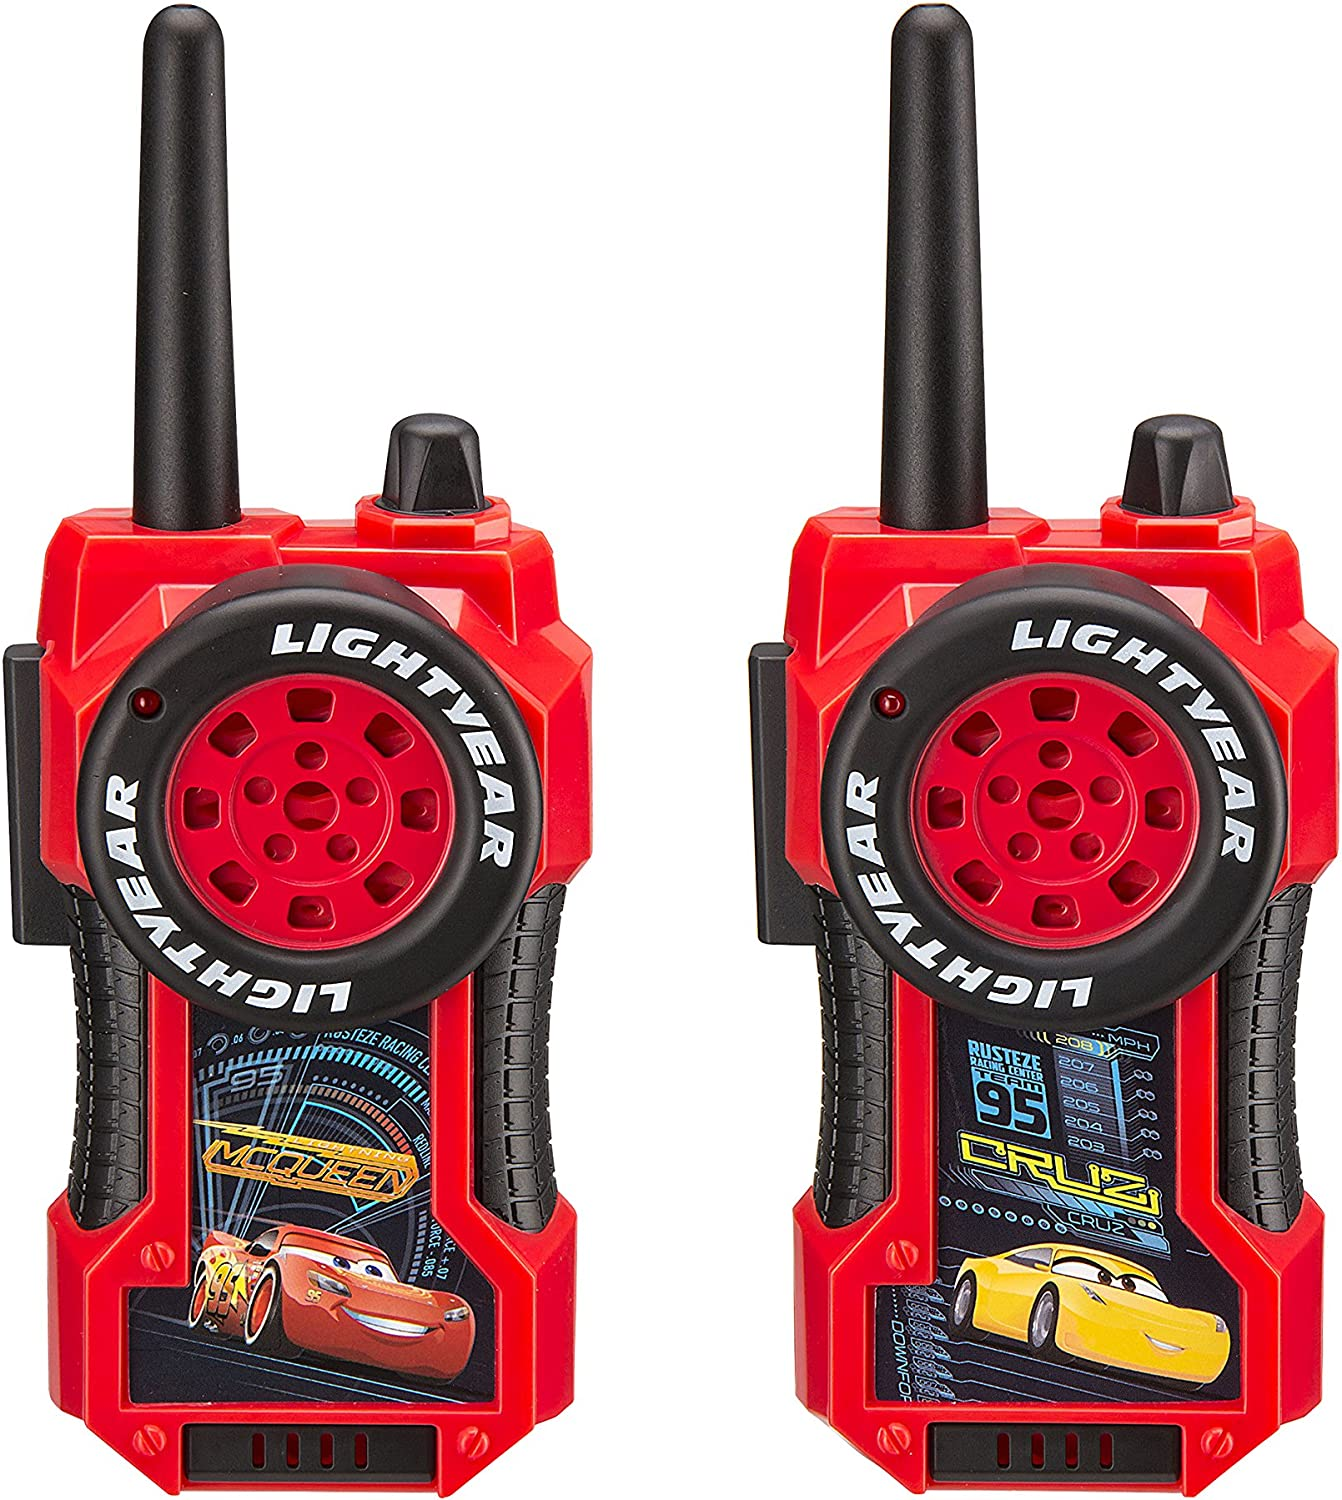 B00503KQ7Y Disney Pixar Cars 3 Movie Lightning McQueen and Cruz Ramirez FRS Long Range Static Free Character Walkie Talkies 91rEw5W3lSL